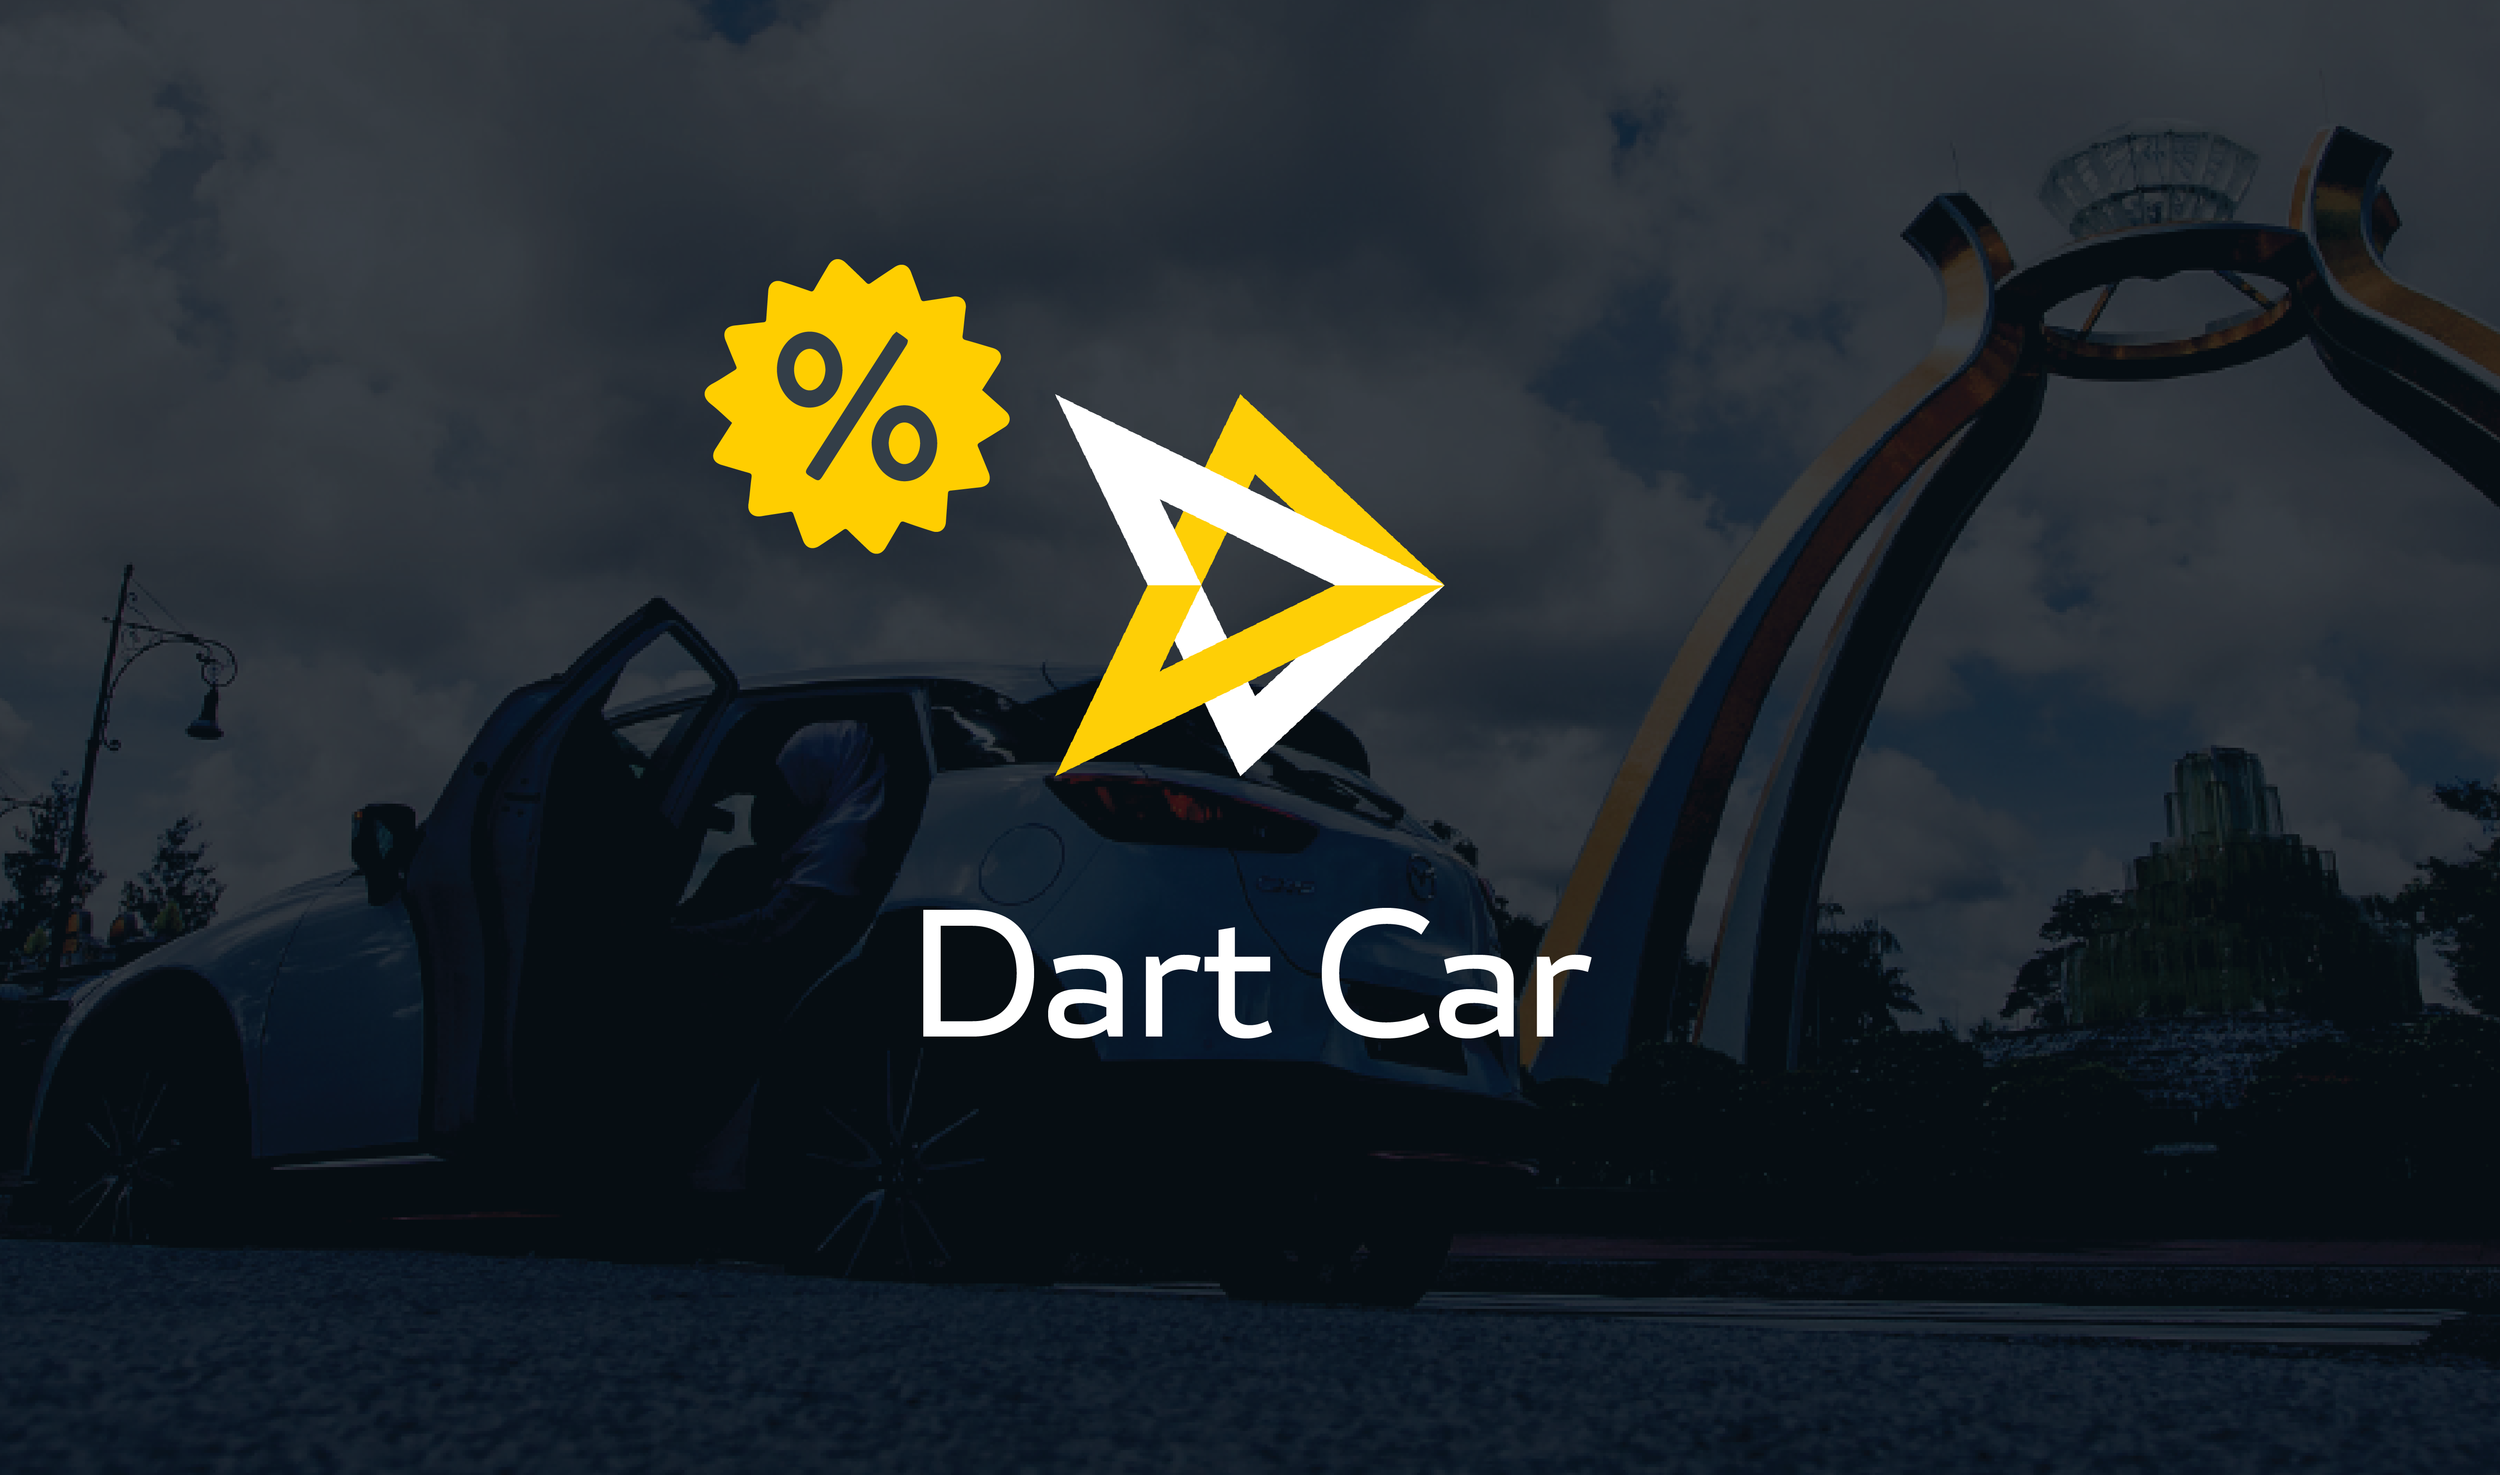 DART CAR - Fixed Price. Discounted rates. Up to 4 passengers.The discounted rides are calculated based on the distance and time of travel. The price may differ if you change your final destination, add additional stops or end the ride early.